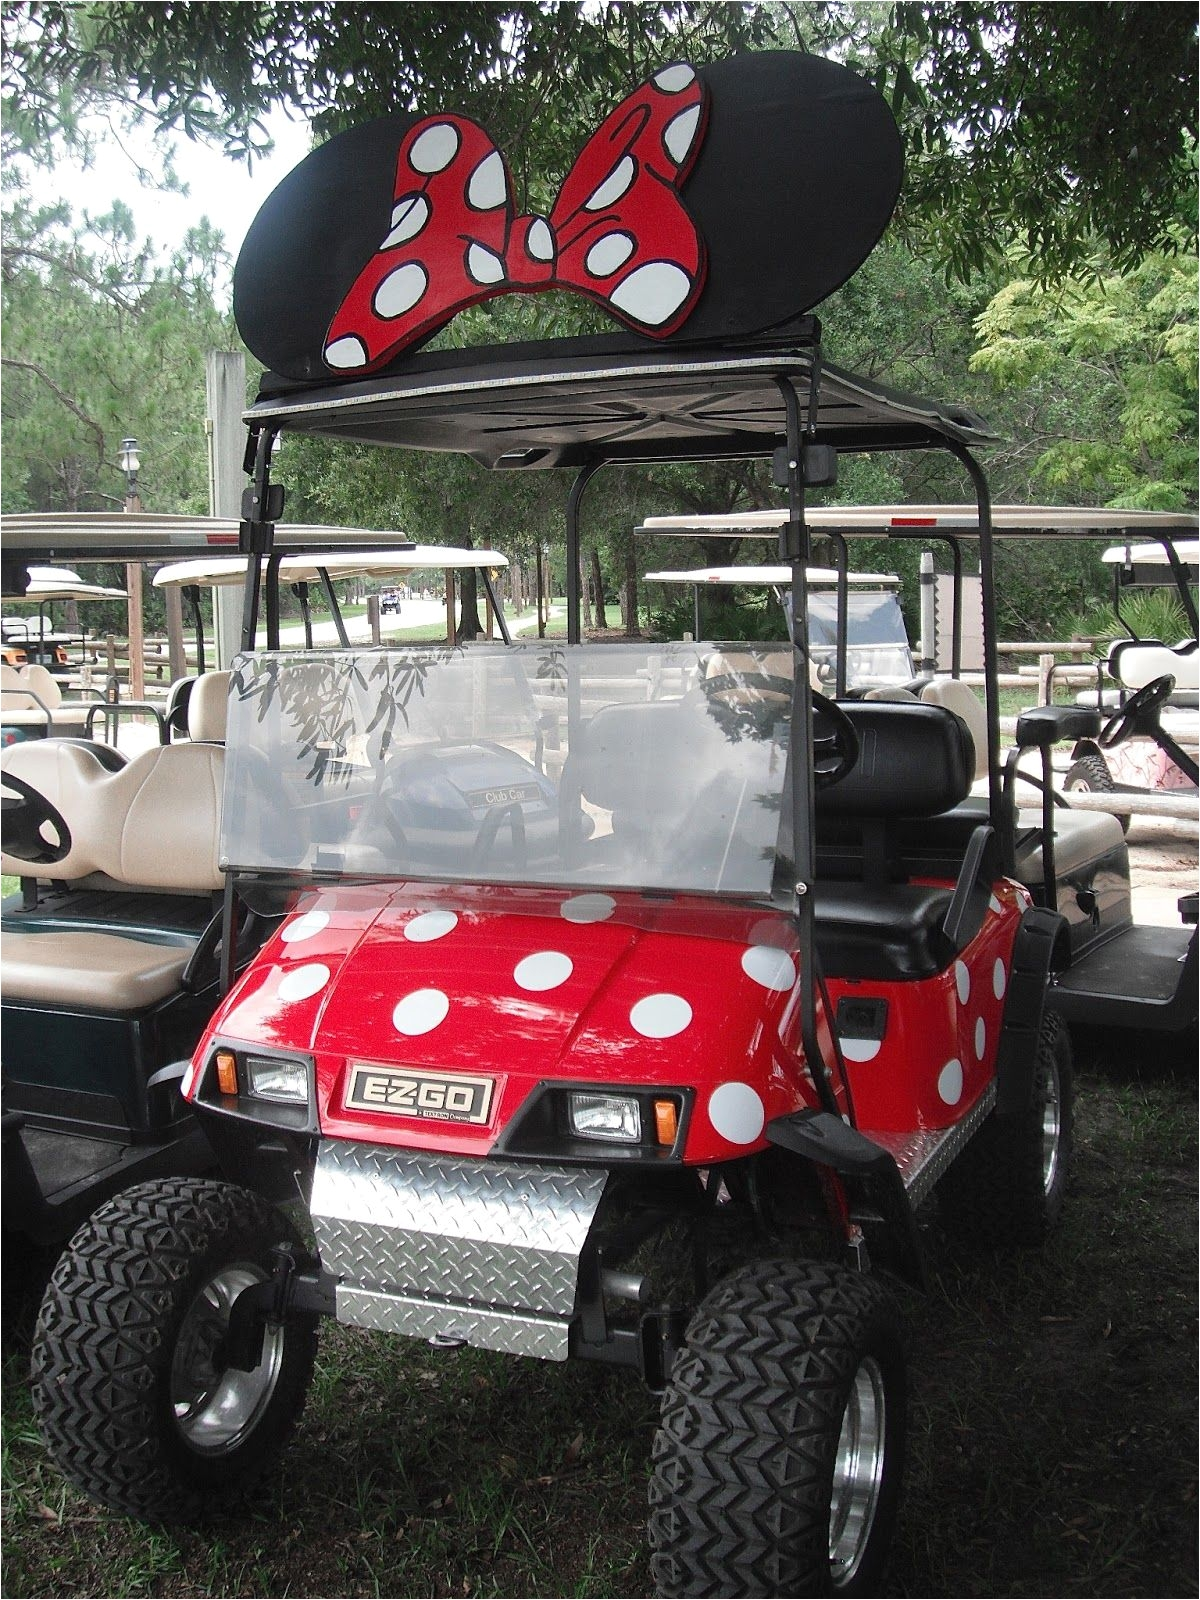 private decorated cart fort wilderness campground so cute and clever i want one